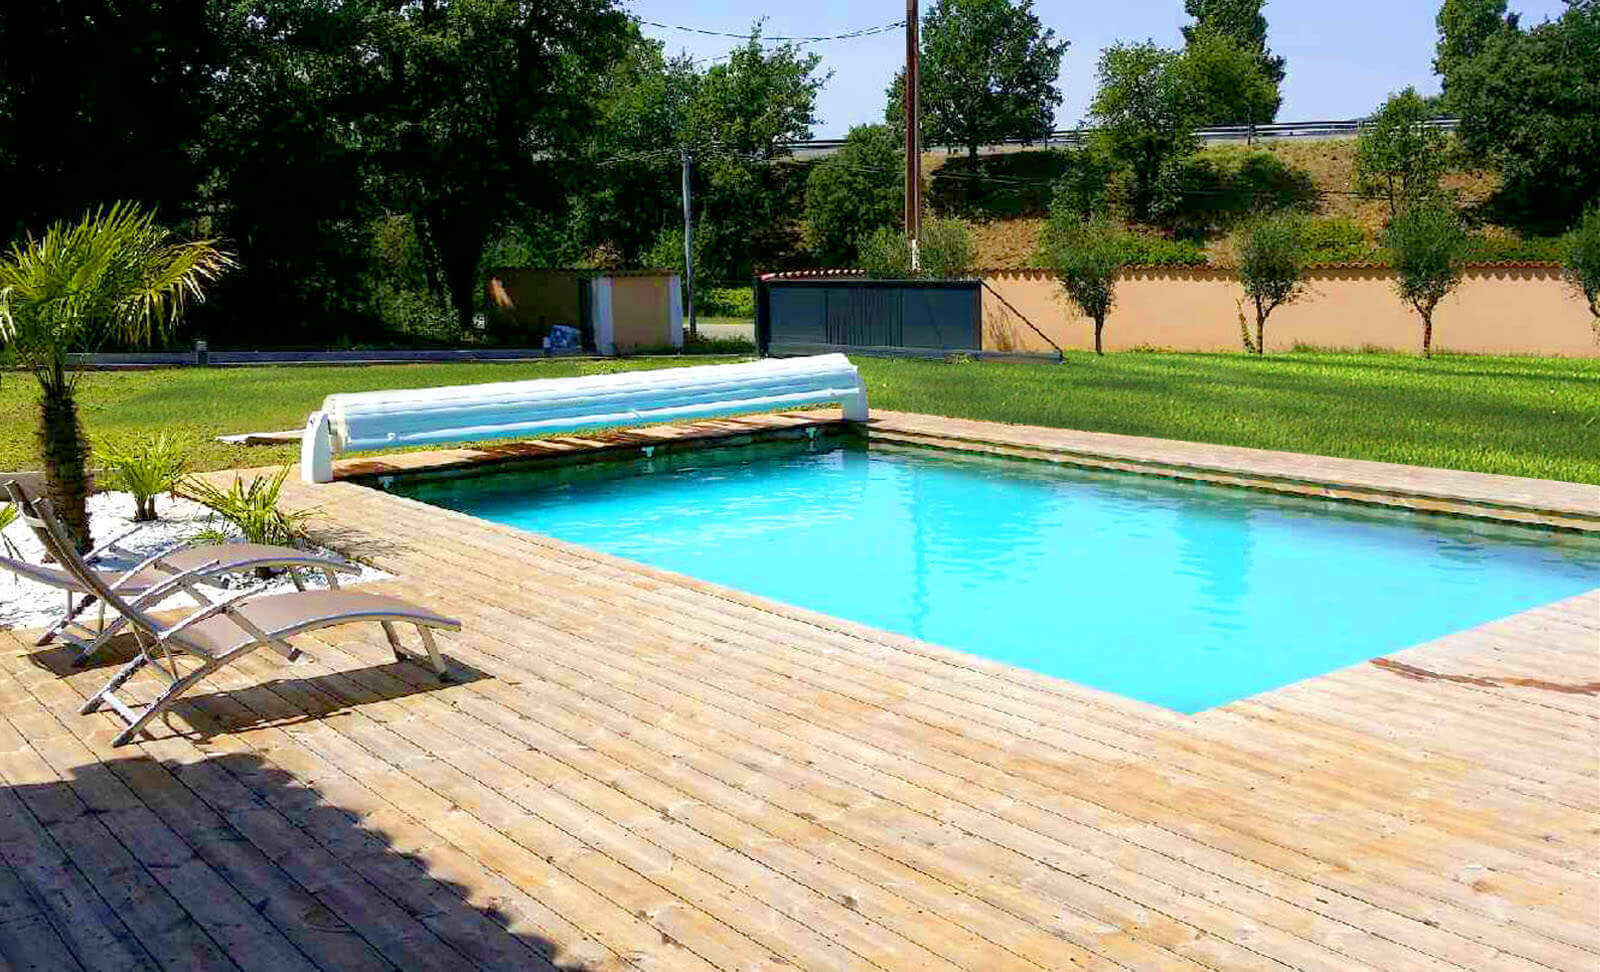 Galerie photos de piscines enterr es en bois for Piscine bois